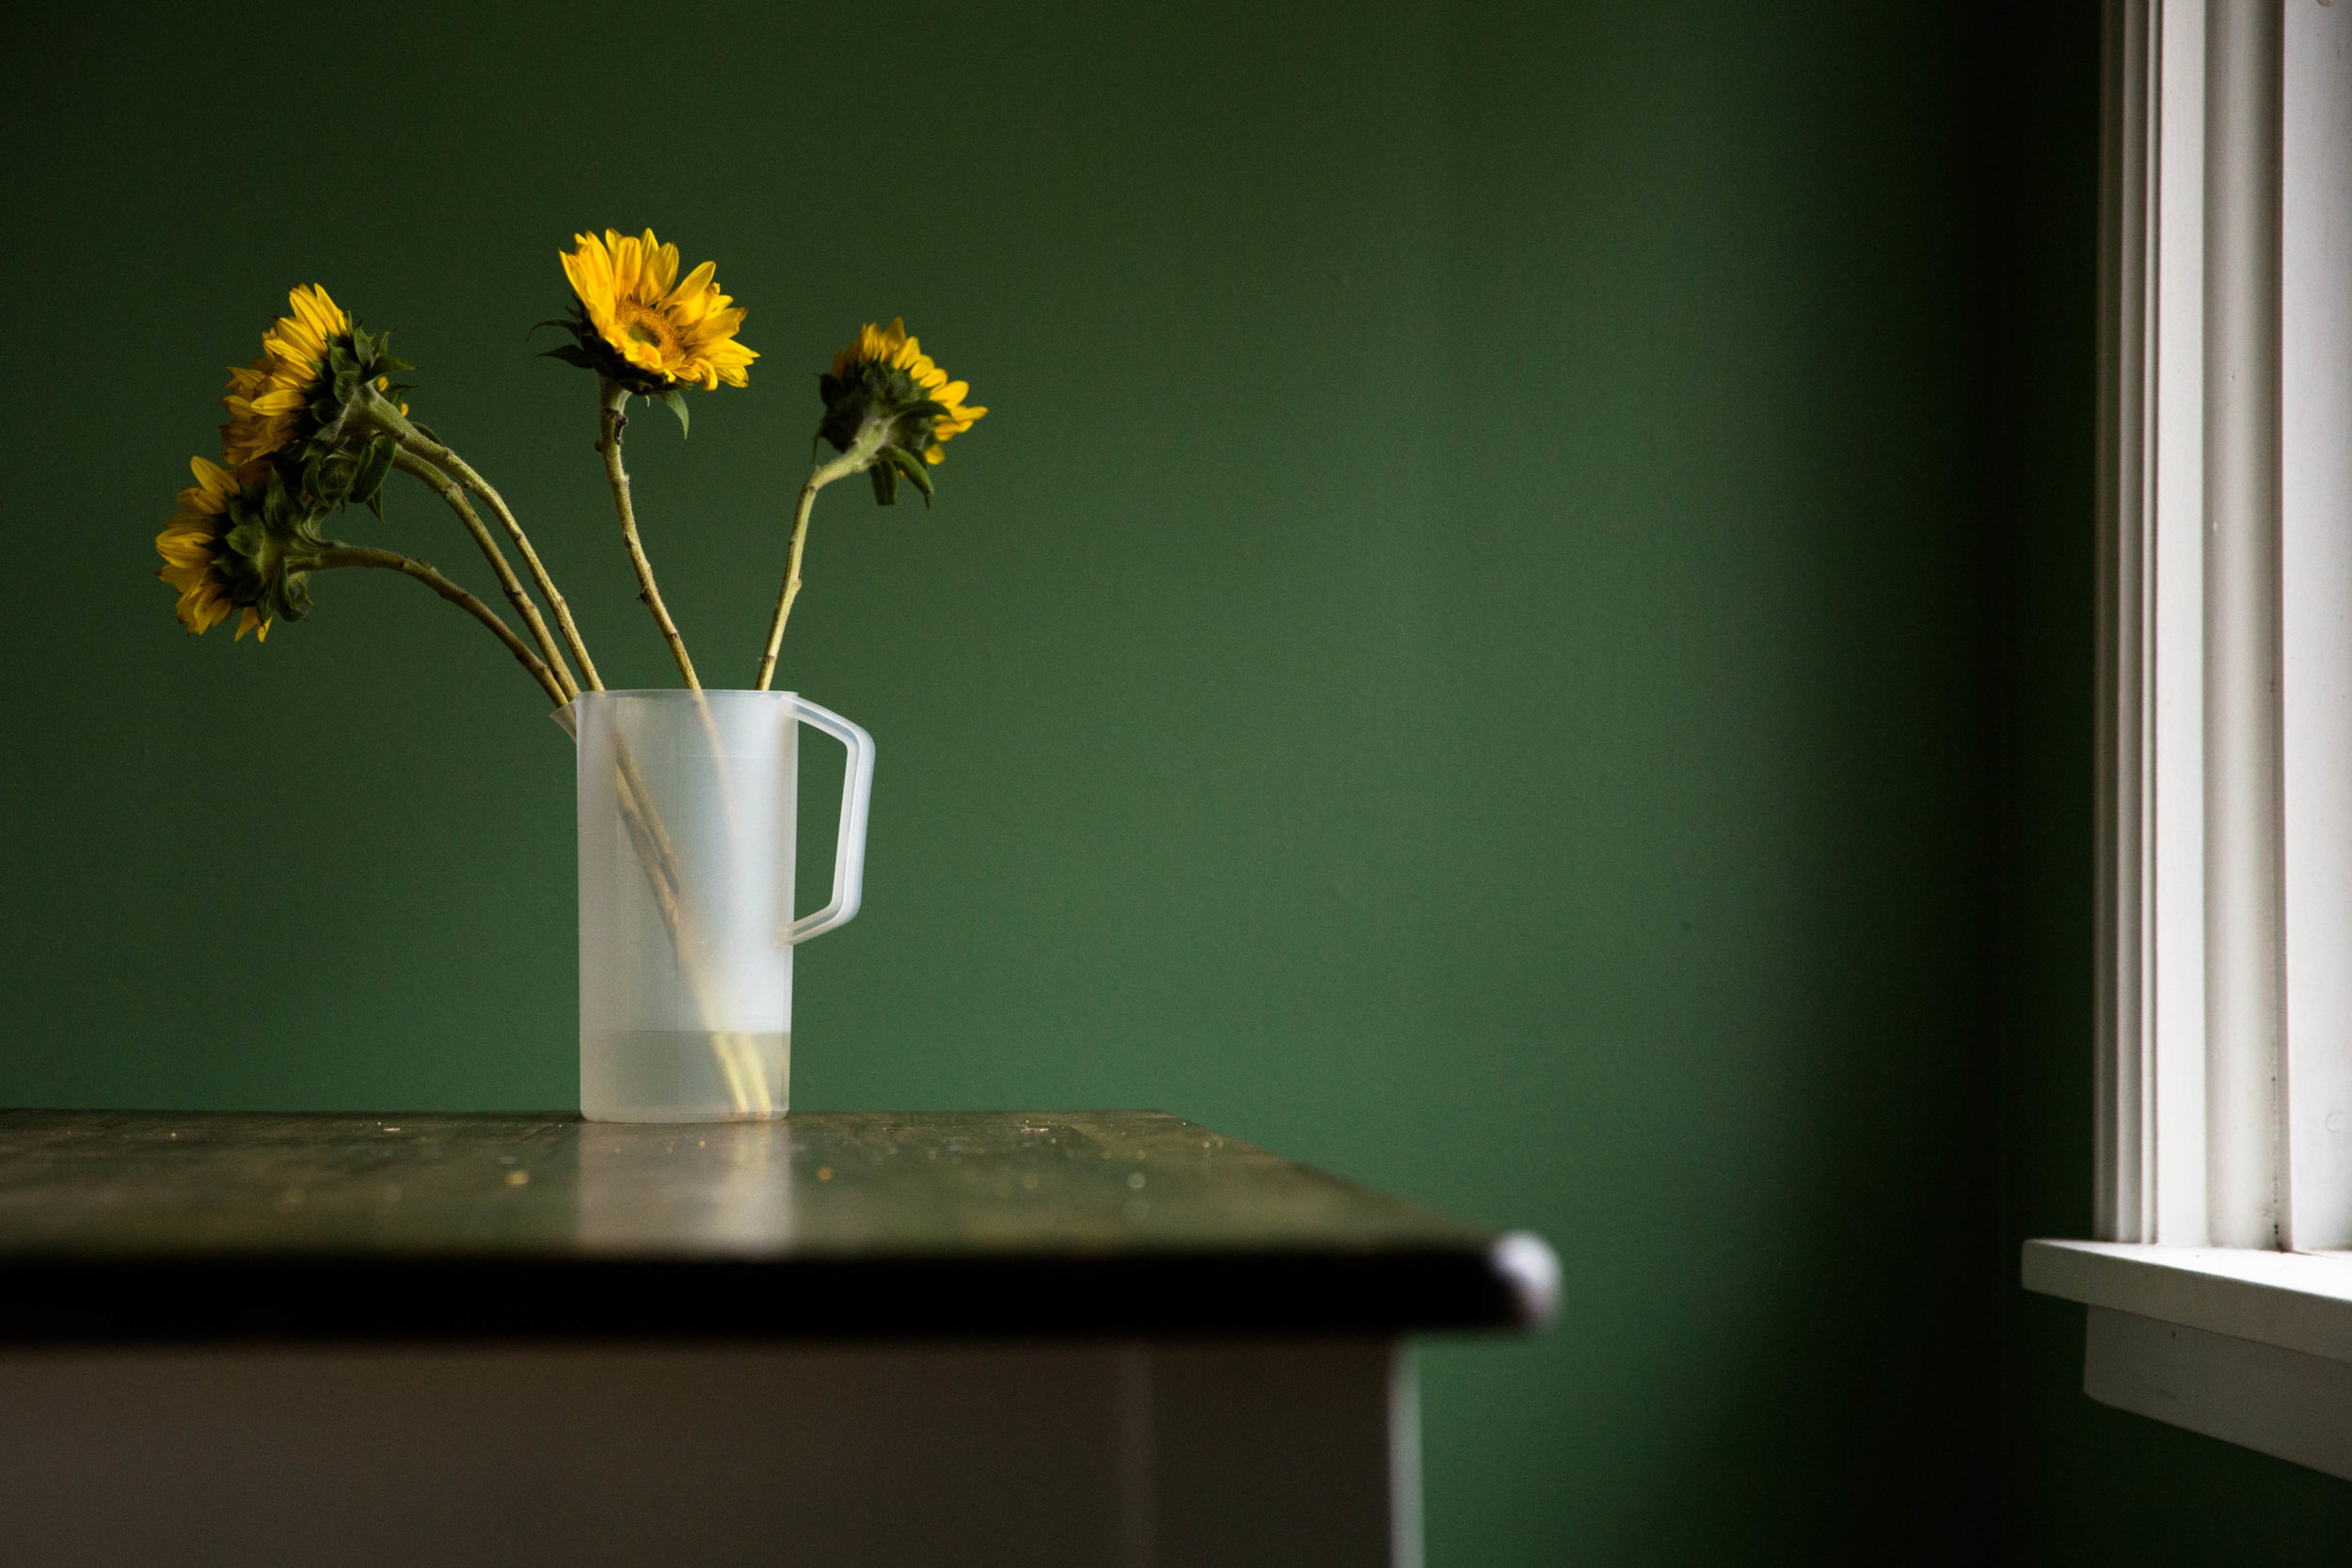 Picture of a bunch of sunflowers in a vase on a kitchen table by a large window